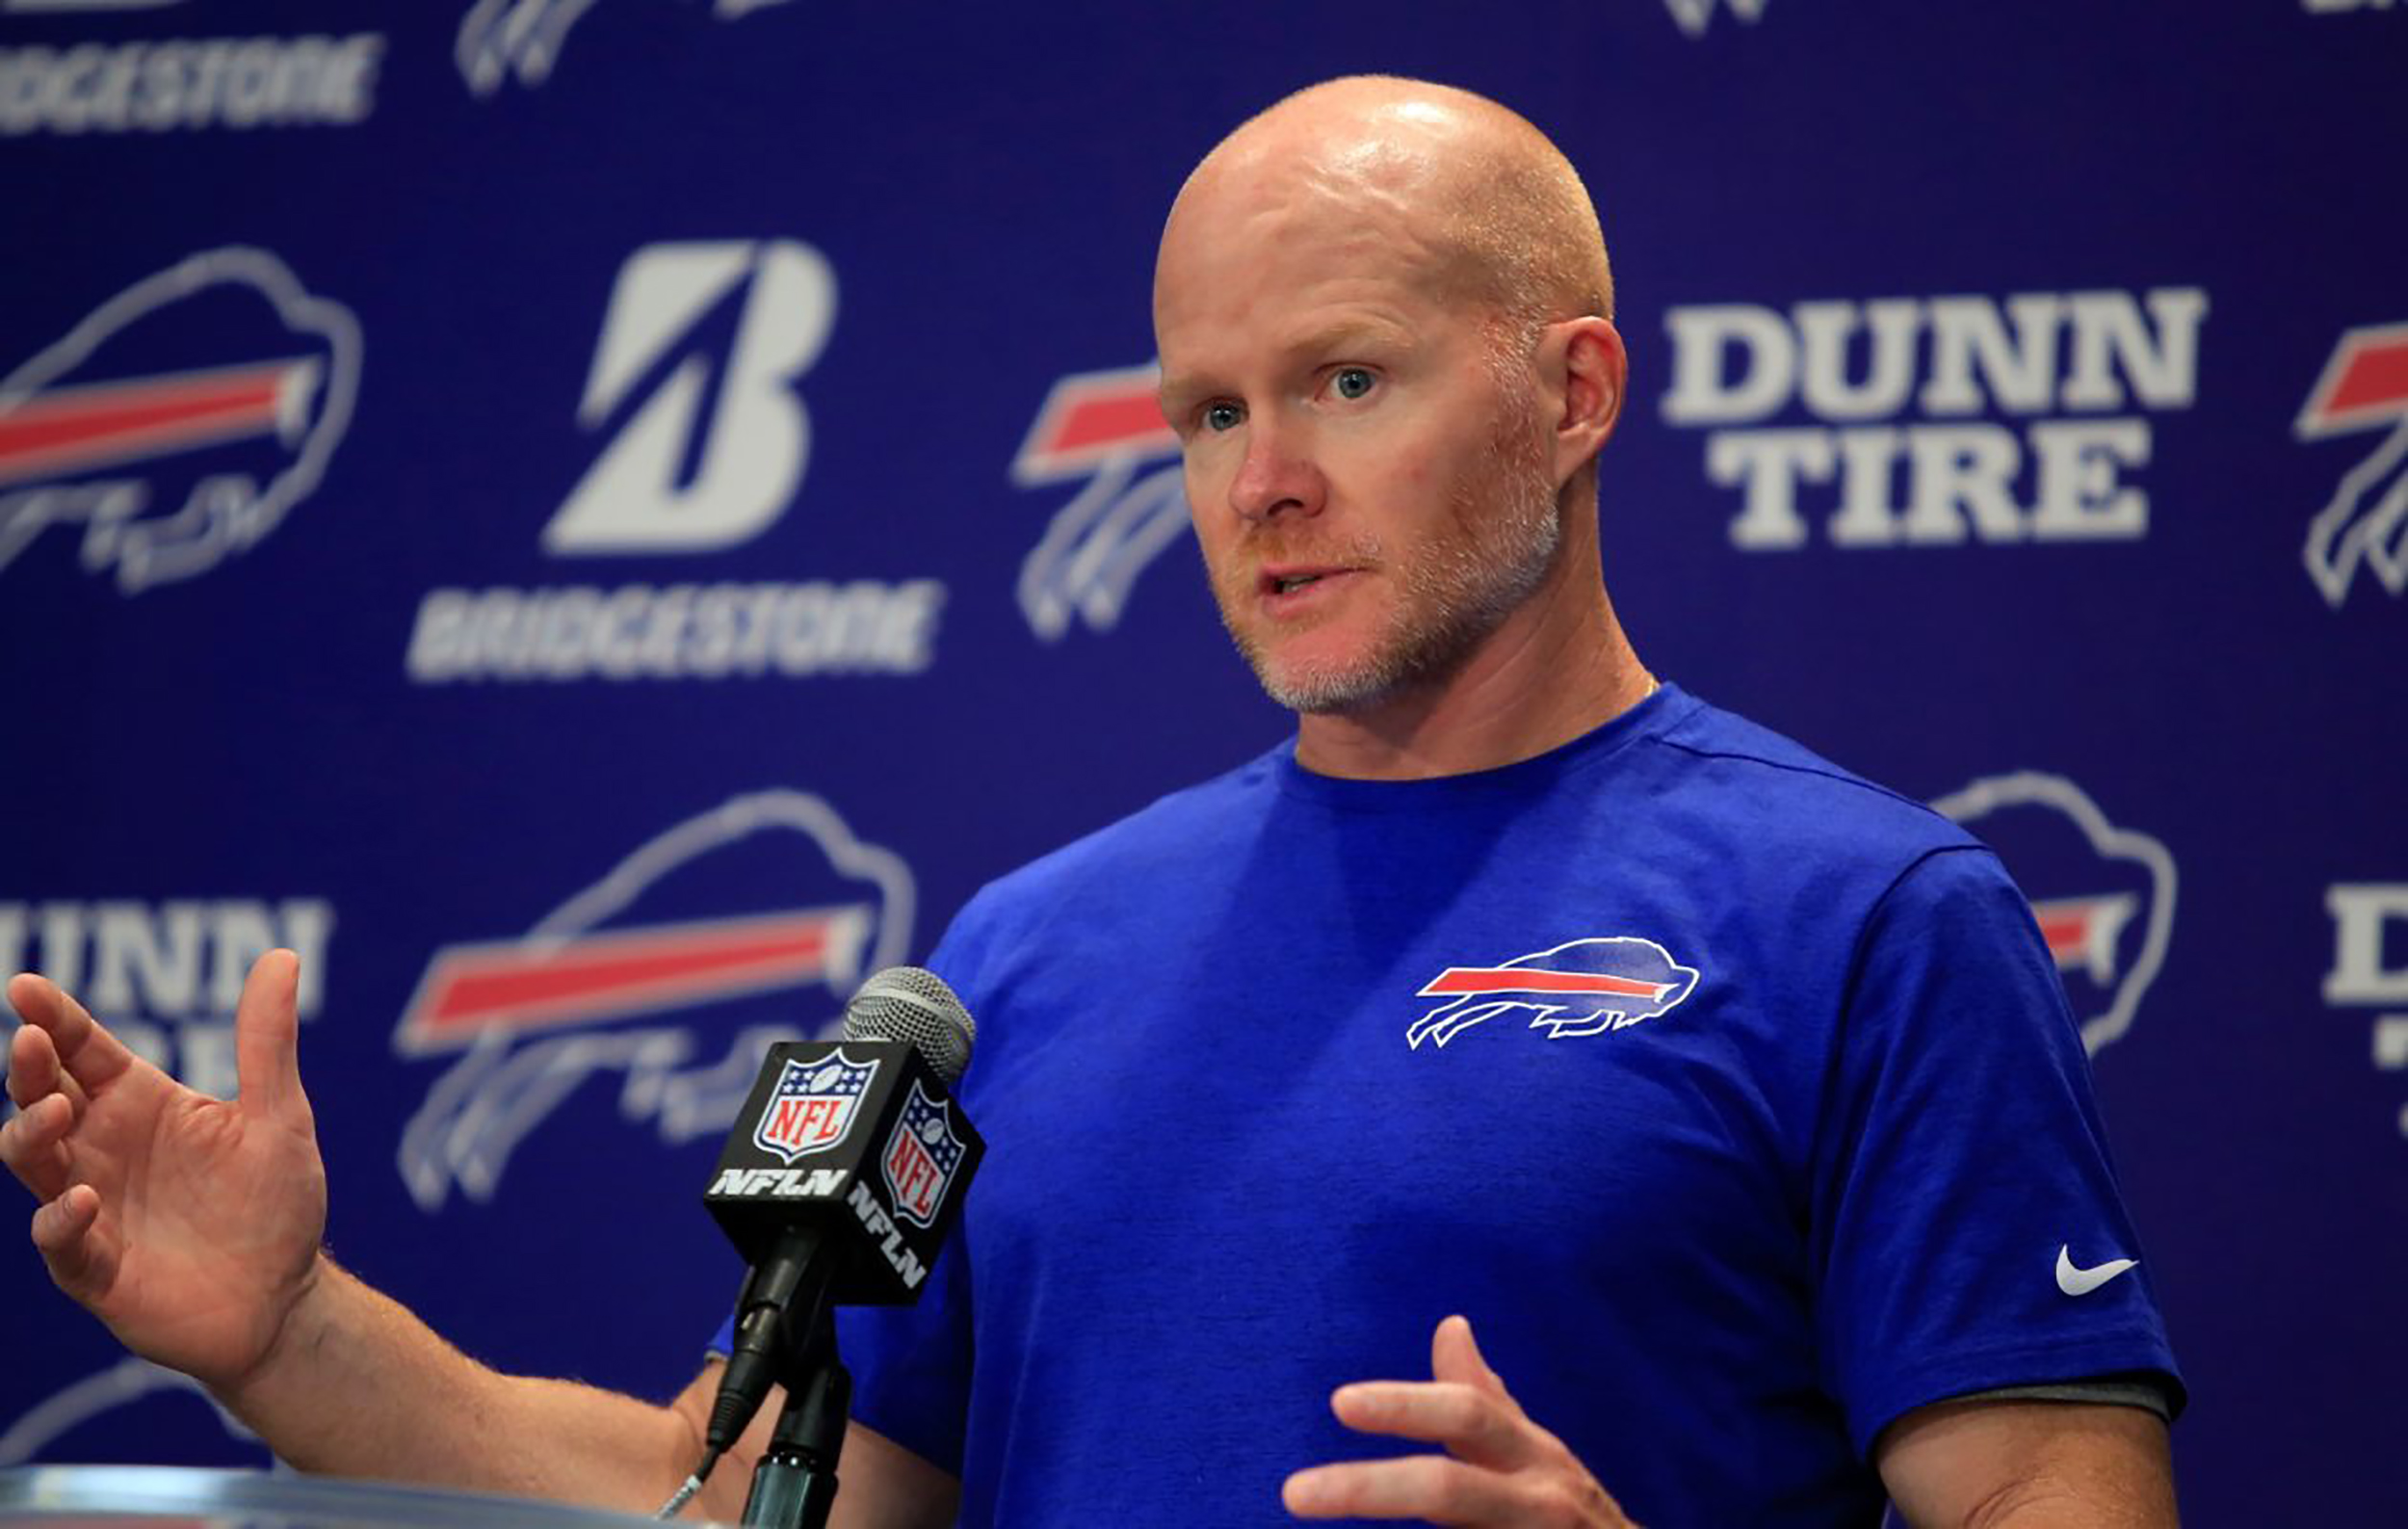 Buffalo Bills head coach Sean McDermott (pictured above) fielded questions from the media on Monday April 15. McDermott is entering his third season as the Bills head coach (courtesy of Creative Commons).